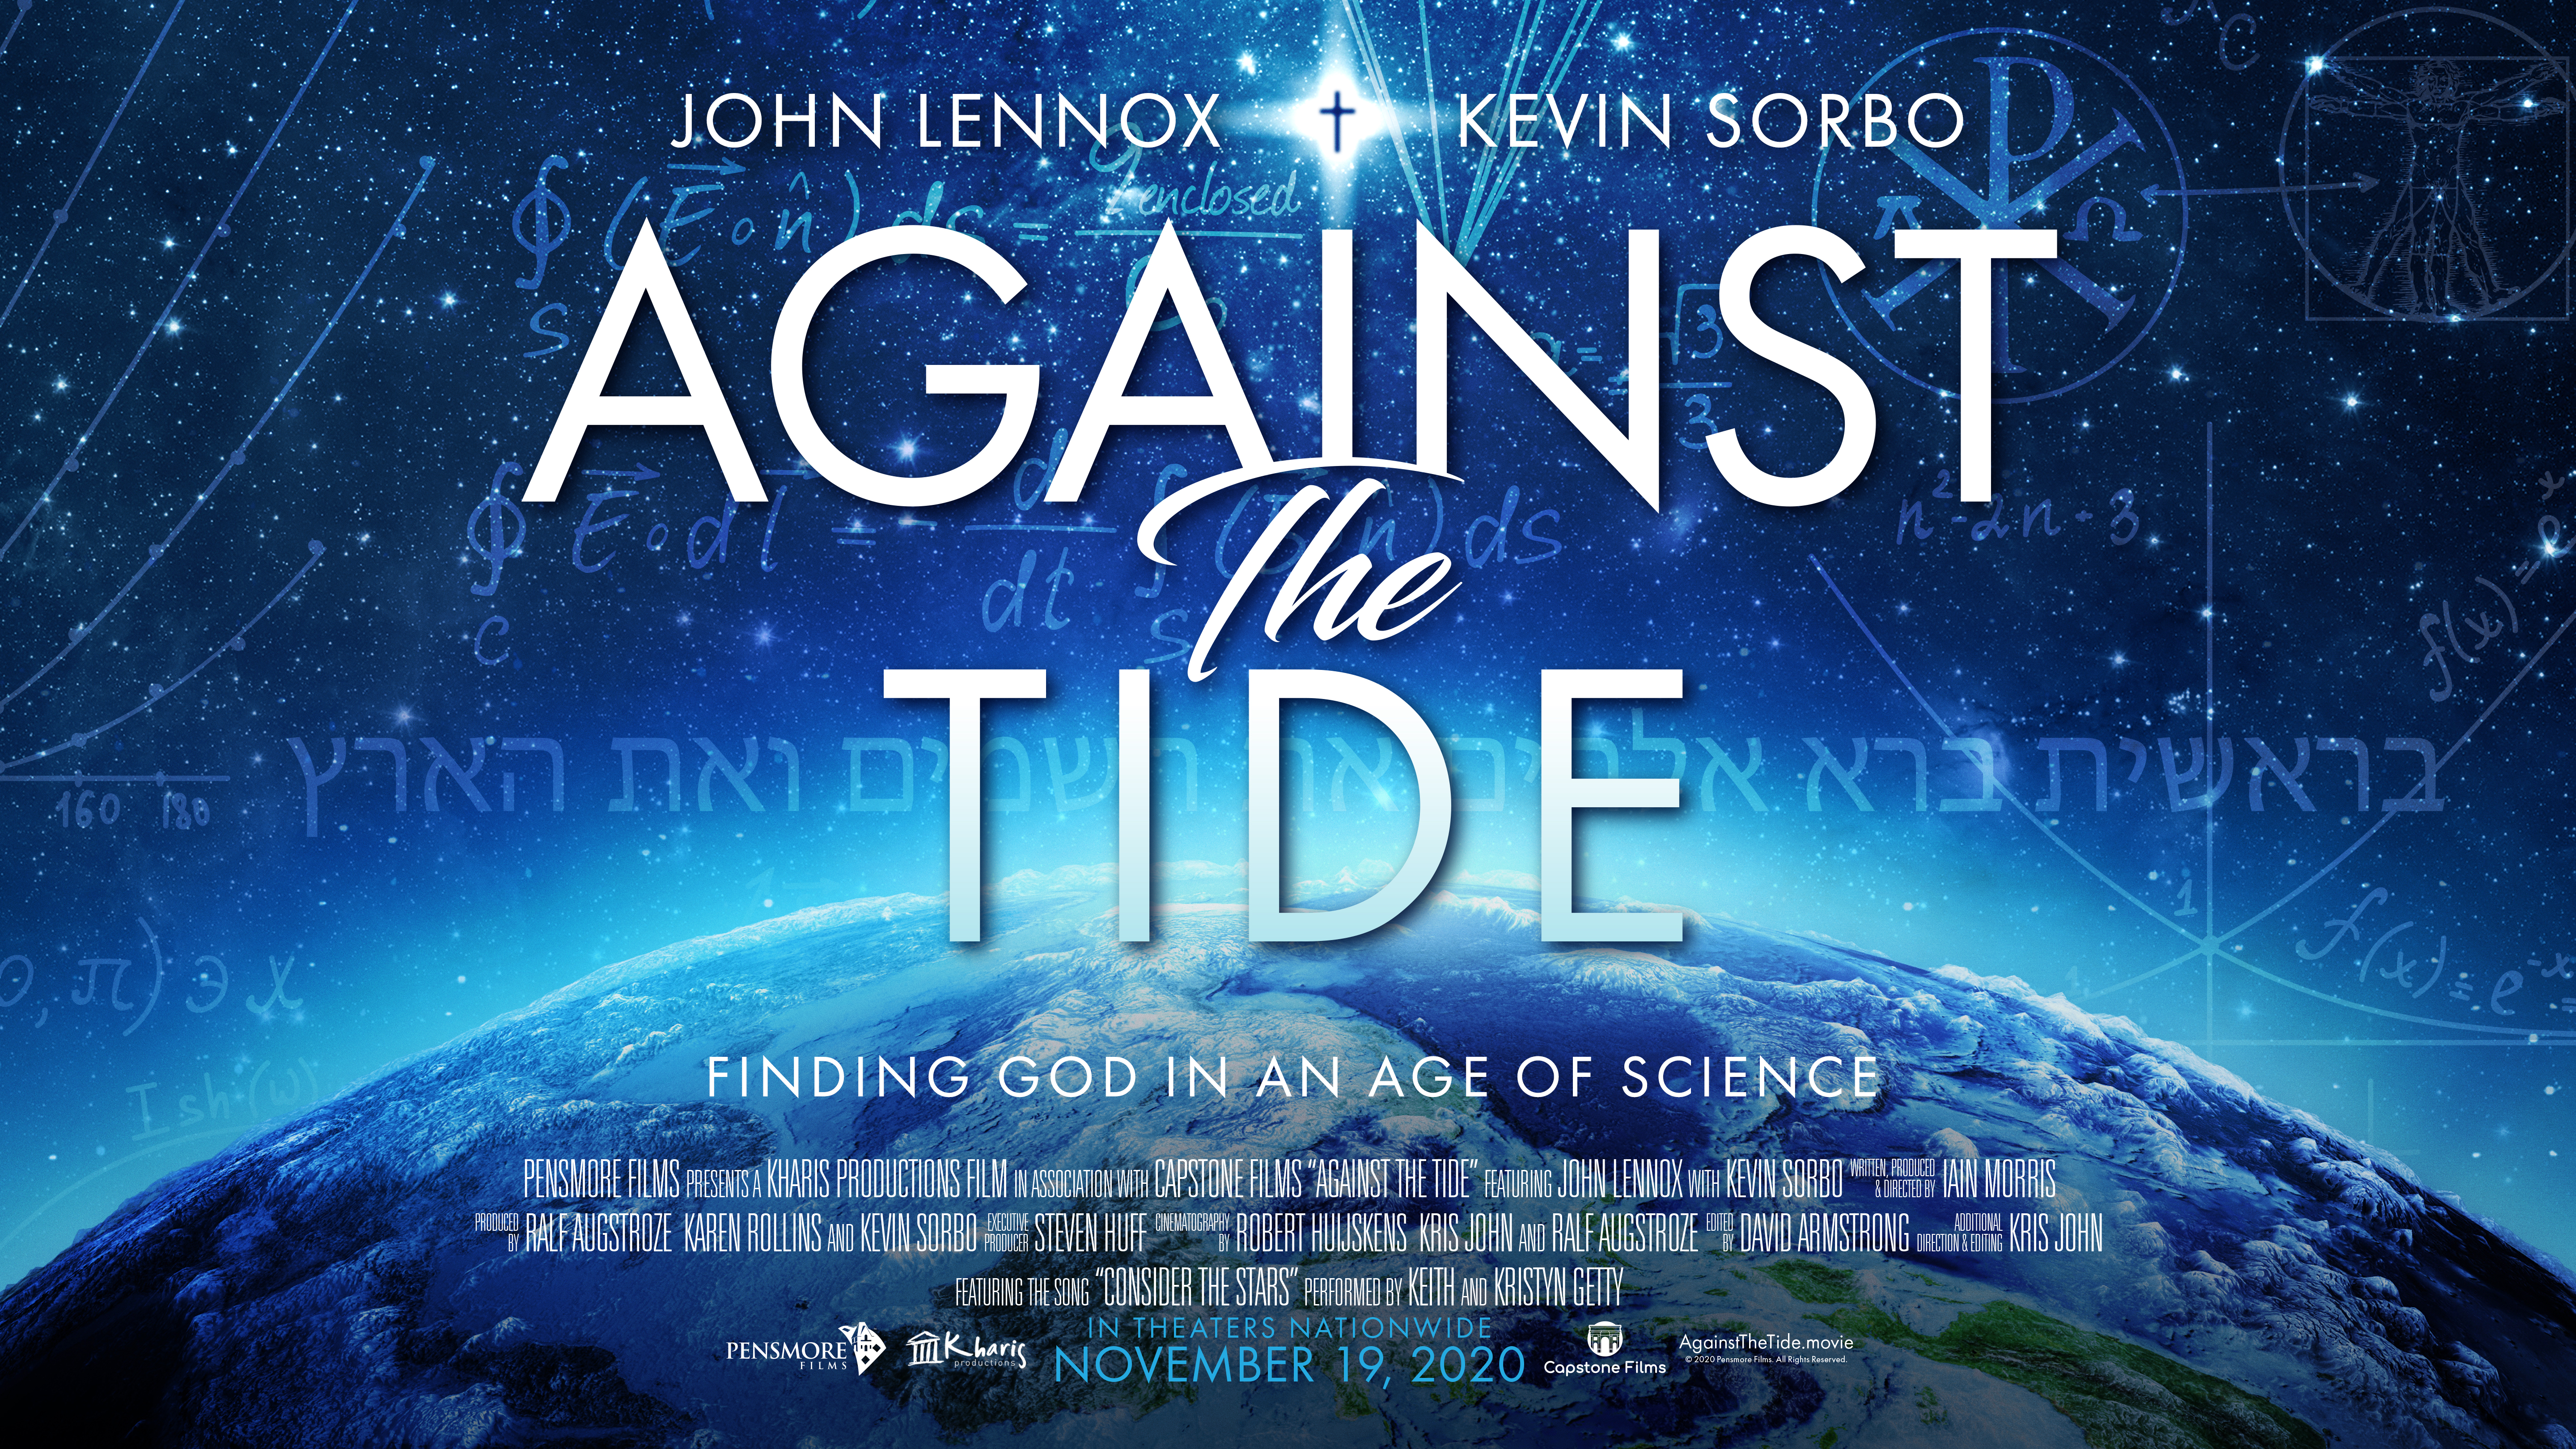 New Film Documents the Life, Work, and Mission of Dr. John Lennox